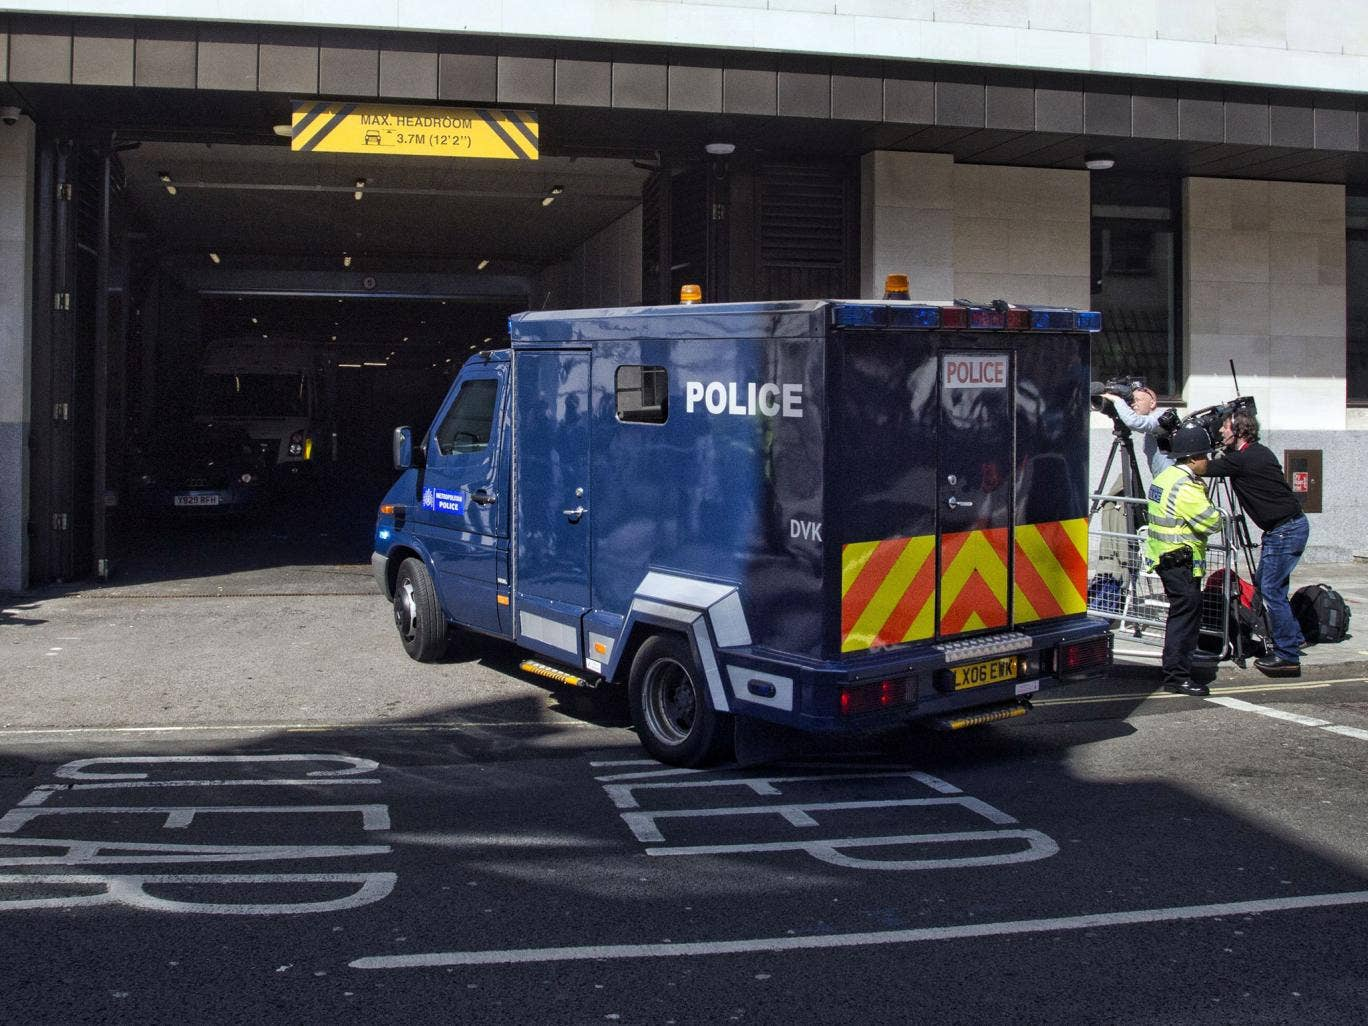 3 June 2013: The van believed to be carrying Michael Adebolajo, 28, arrives at Westminster Magistrates Court, central London, where he is due to appear charged with the murder of Drummer Lee Rigby